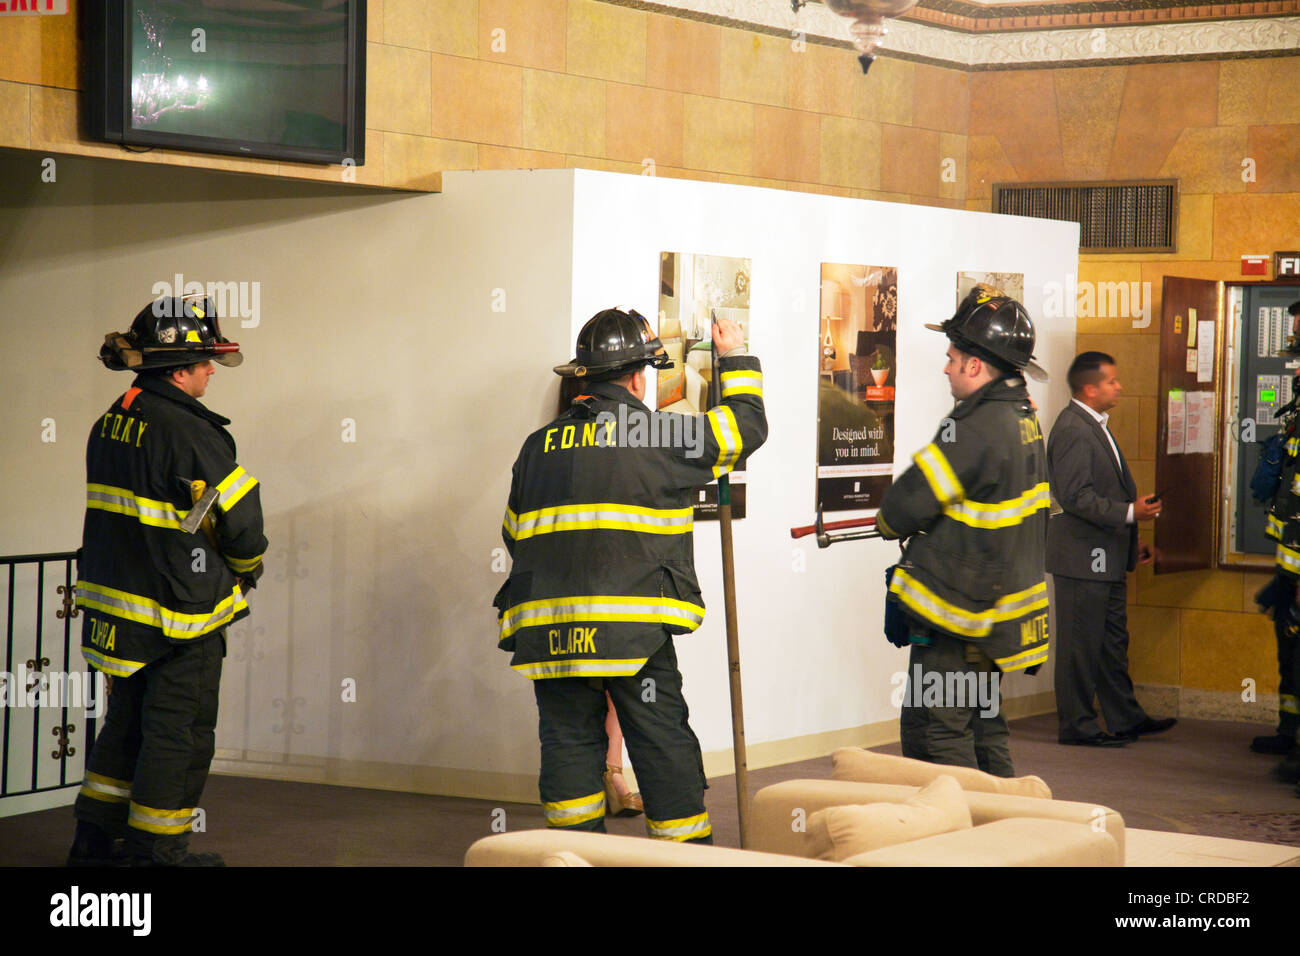 FDNY fire department New York City firemen stood around chatting in hotel building after emergency, fire brigade - Stock Image